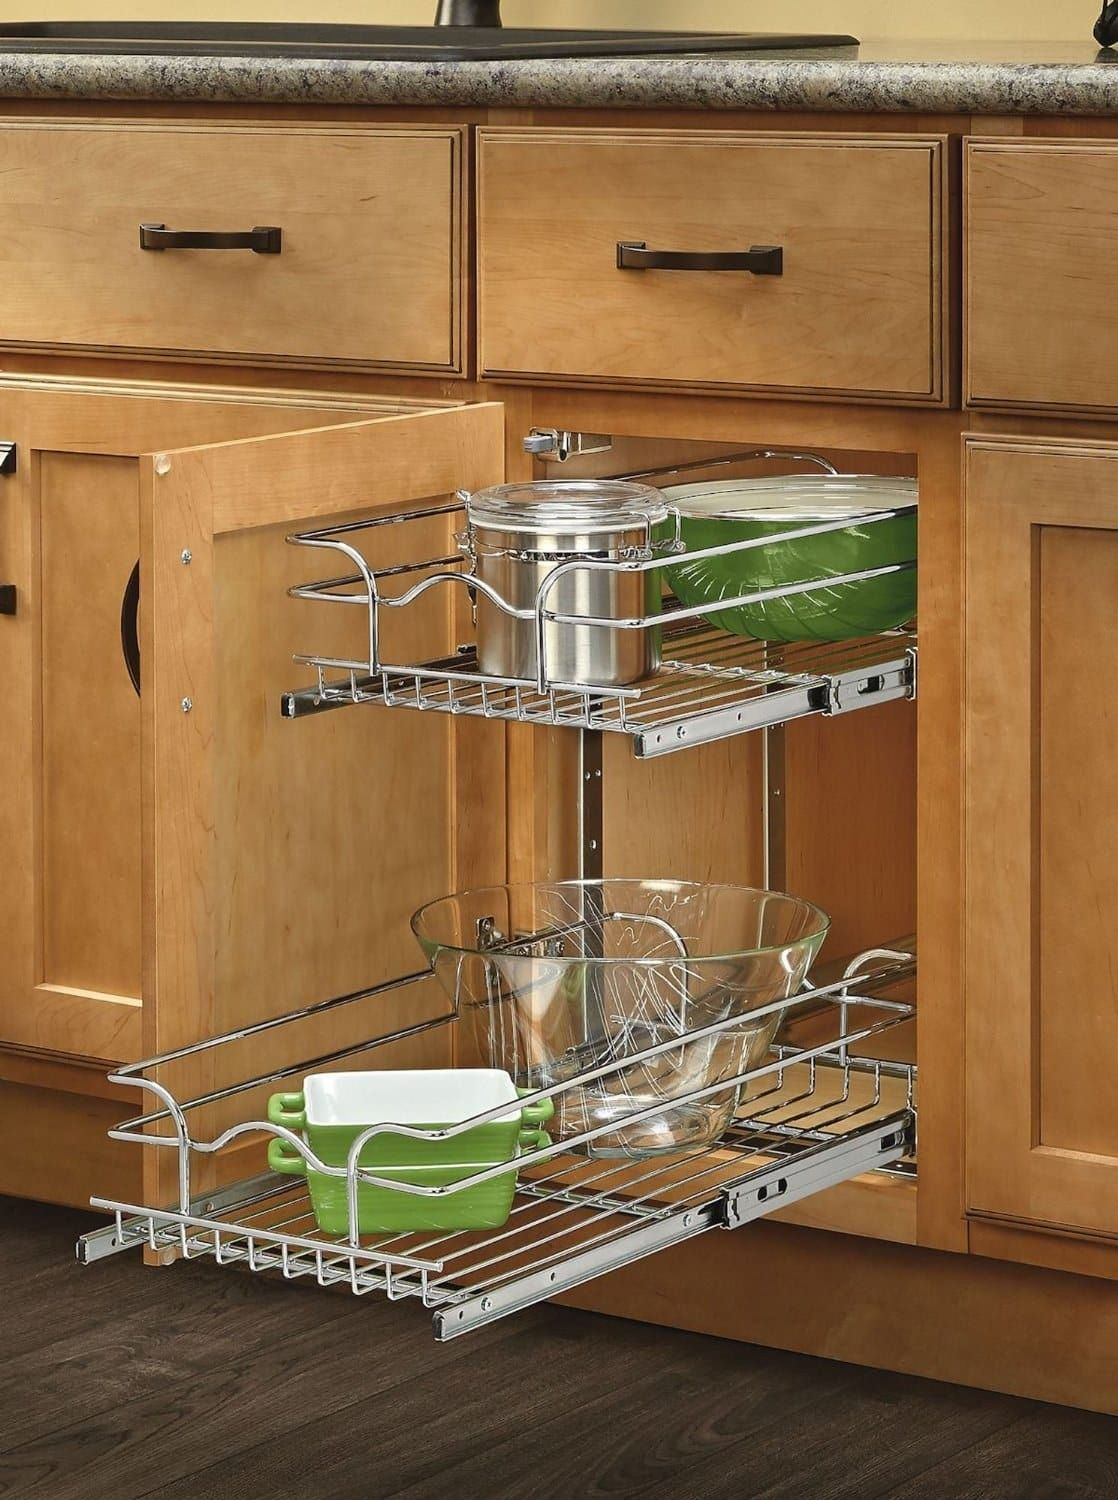 47 Insanely Clever Storage Ideas For Your Whole House Pull Out Drawers Rev A Shelf Sliding Shelves